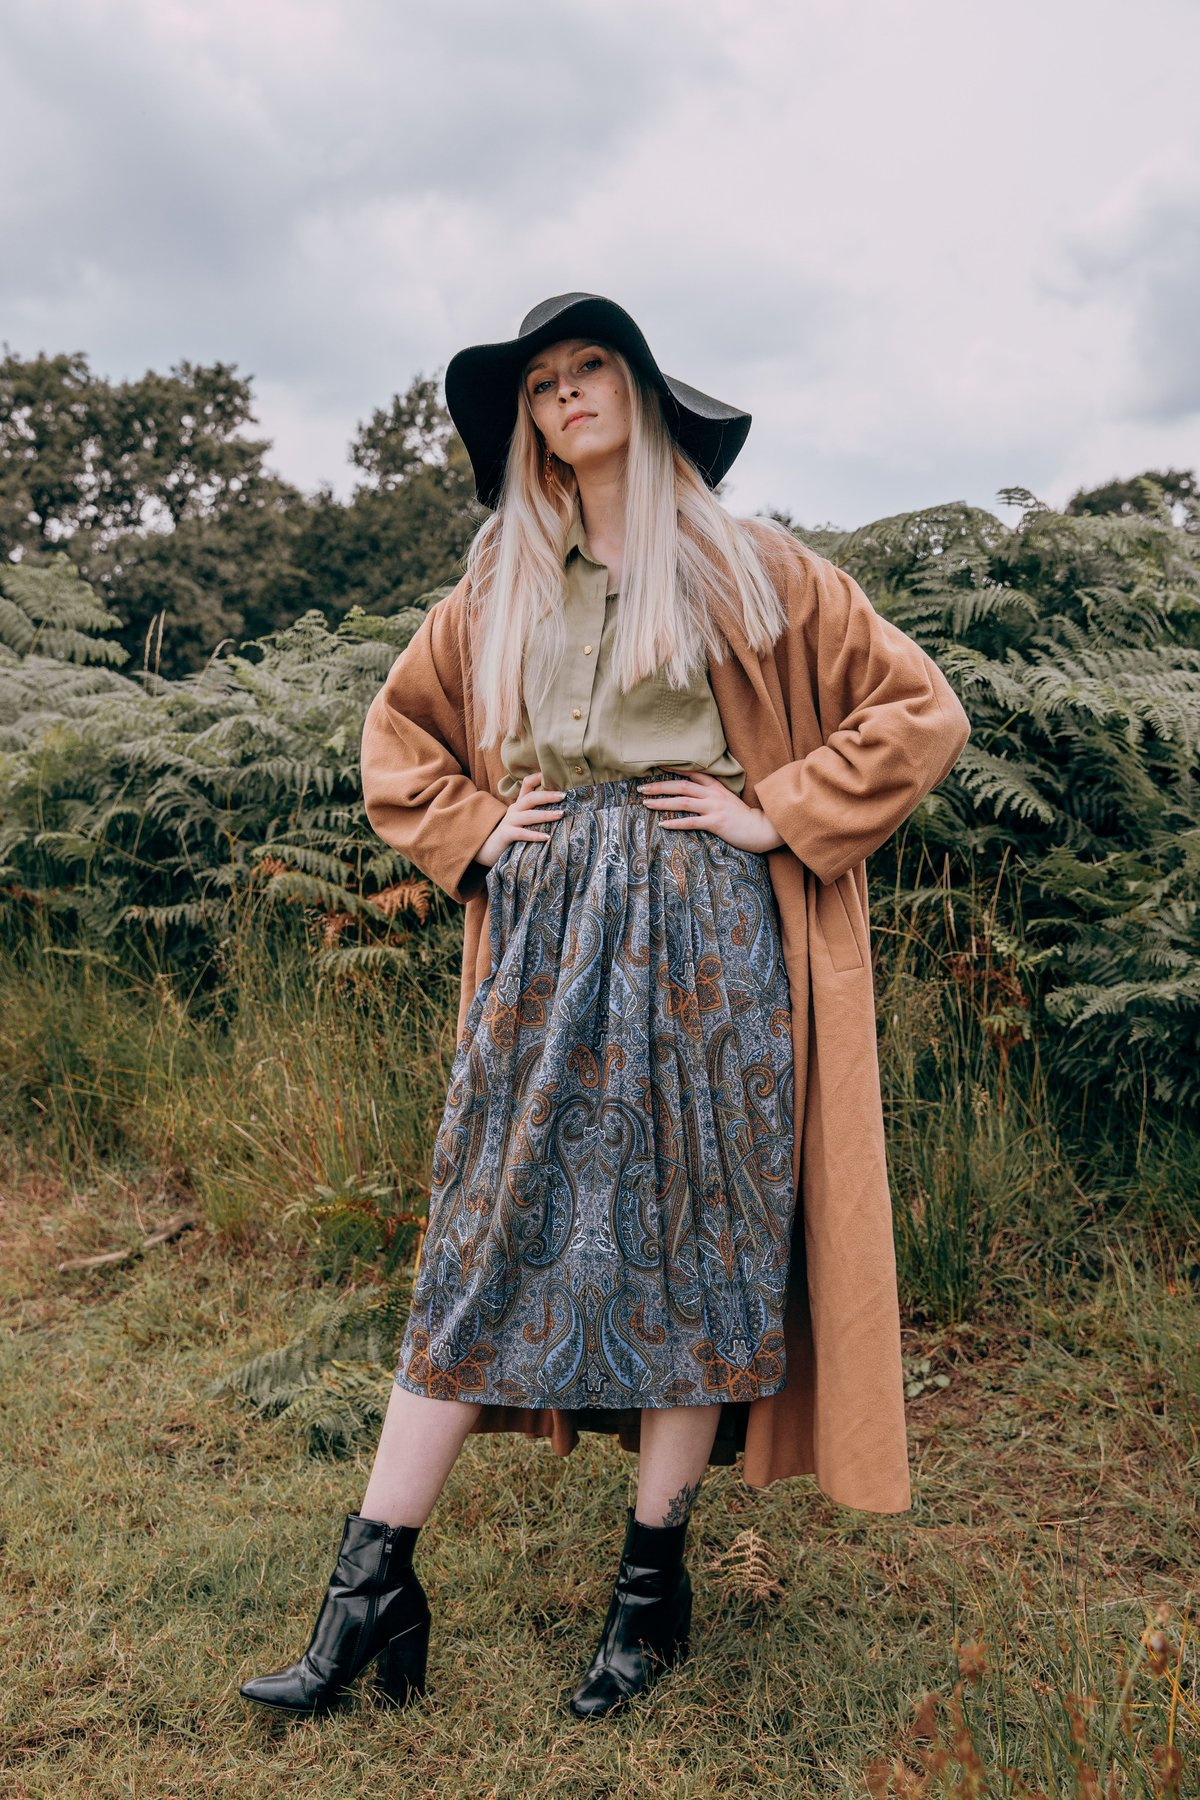 Amber wearing a long brown coat and a blue skirt against a backdrop of ferns in Richmond Park